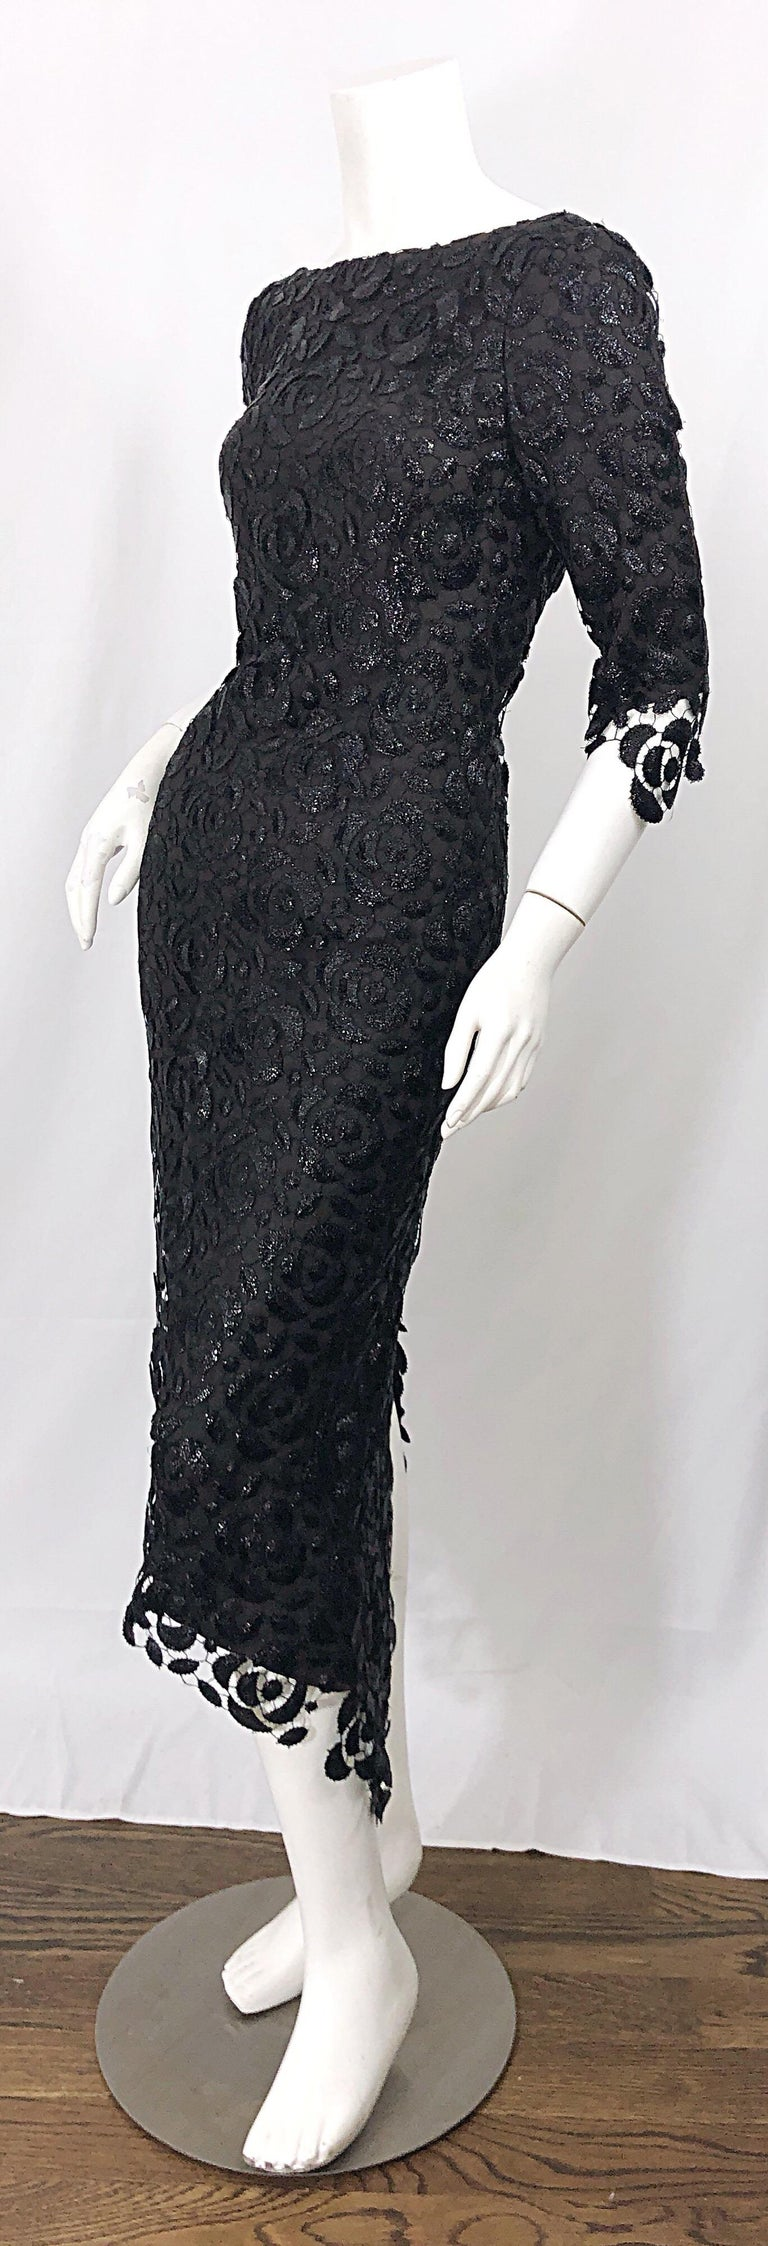 Stunning $10k Vintage Halston Black 3/4 Sleeves Silk Lace Crochet Sz 4 6 Dress For Sale 2